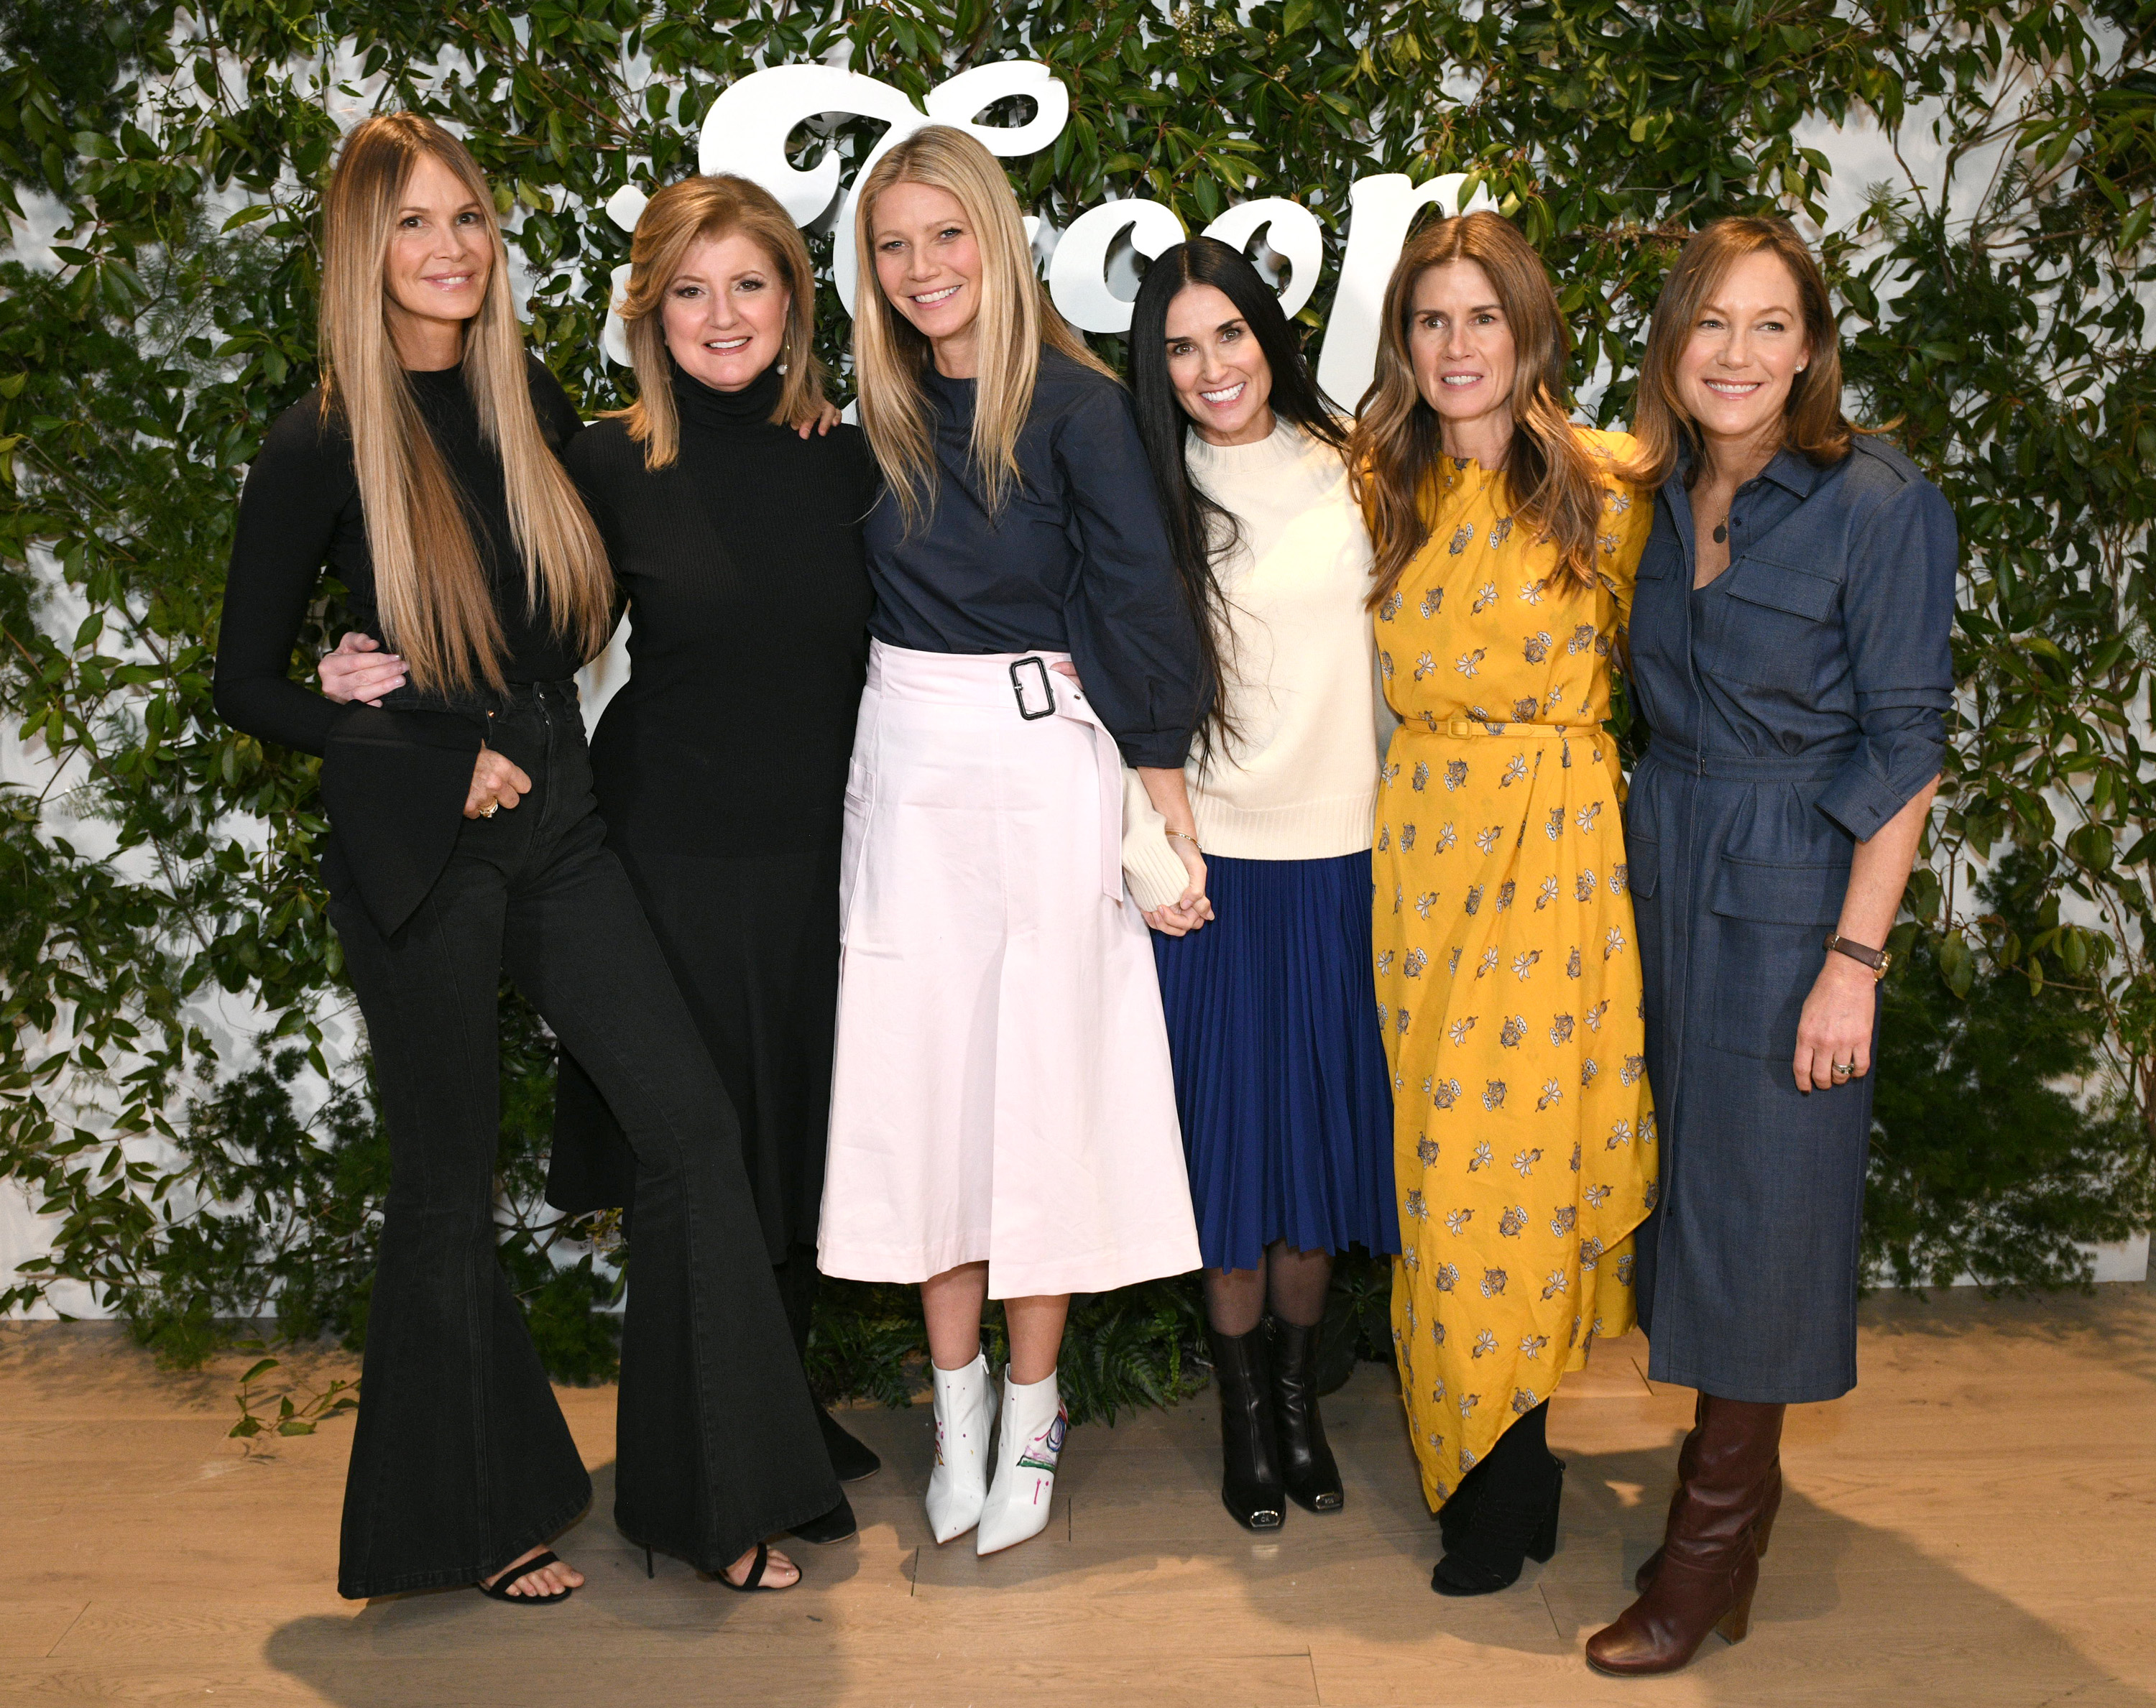 NEW YORK, NEW YORK - MARCH 09: (L-R) Elle Macpherson, Arianna Huffington, Gwyneth Paltrow, Demi Moore, Gucci Westman and Gregg Renfrew attend the In goop Health Summit New York 2019 at Seaport District NYC on March 09, 2019 in New York City. (Photo by Bryan Bedder/Getty Images for goop)